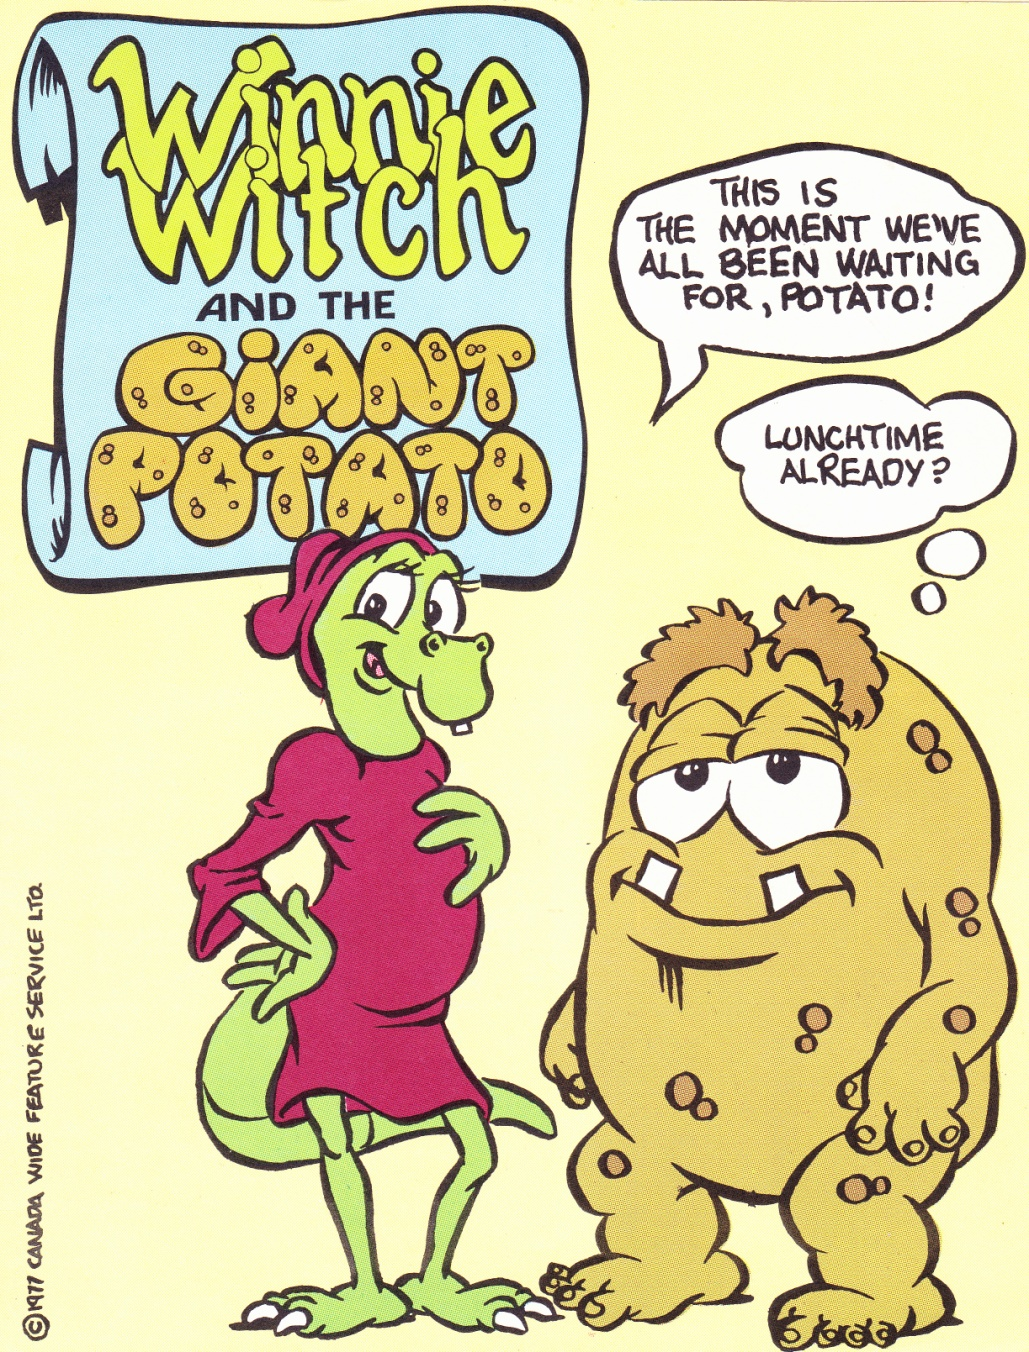 C:\Users\Robert\Documents\CARTOONING ILLUSTRATION ANIMATION\IMAGE CARTOON\IMAGE CARTOON W\WINNIE WITCH & GIANT POTATO, 1-14, 1979_0001.jpg